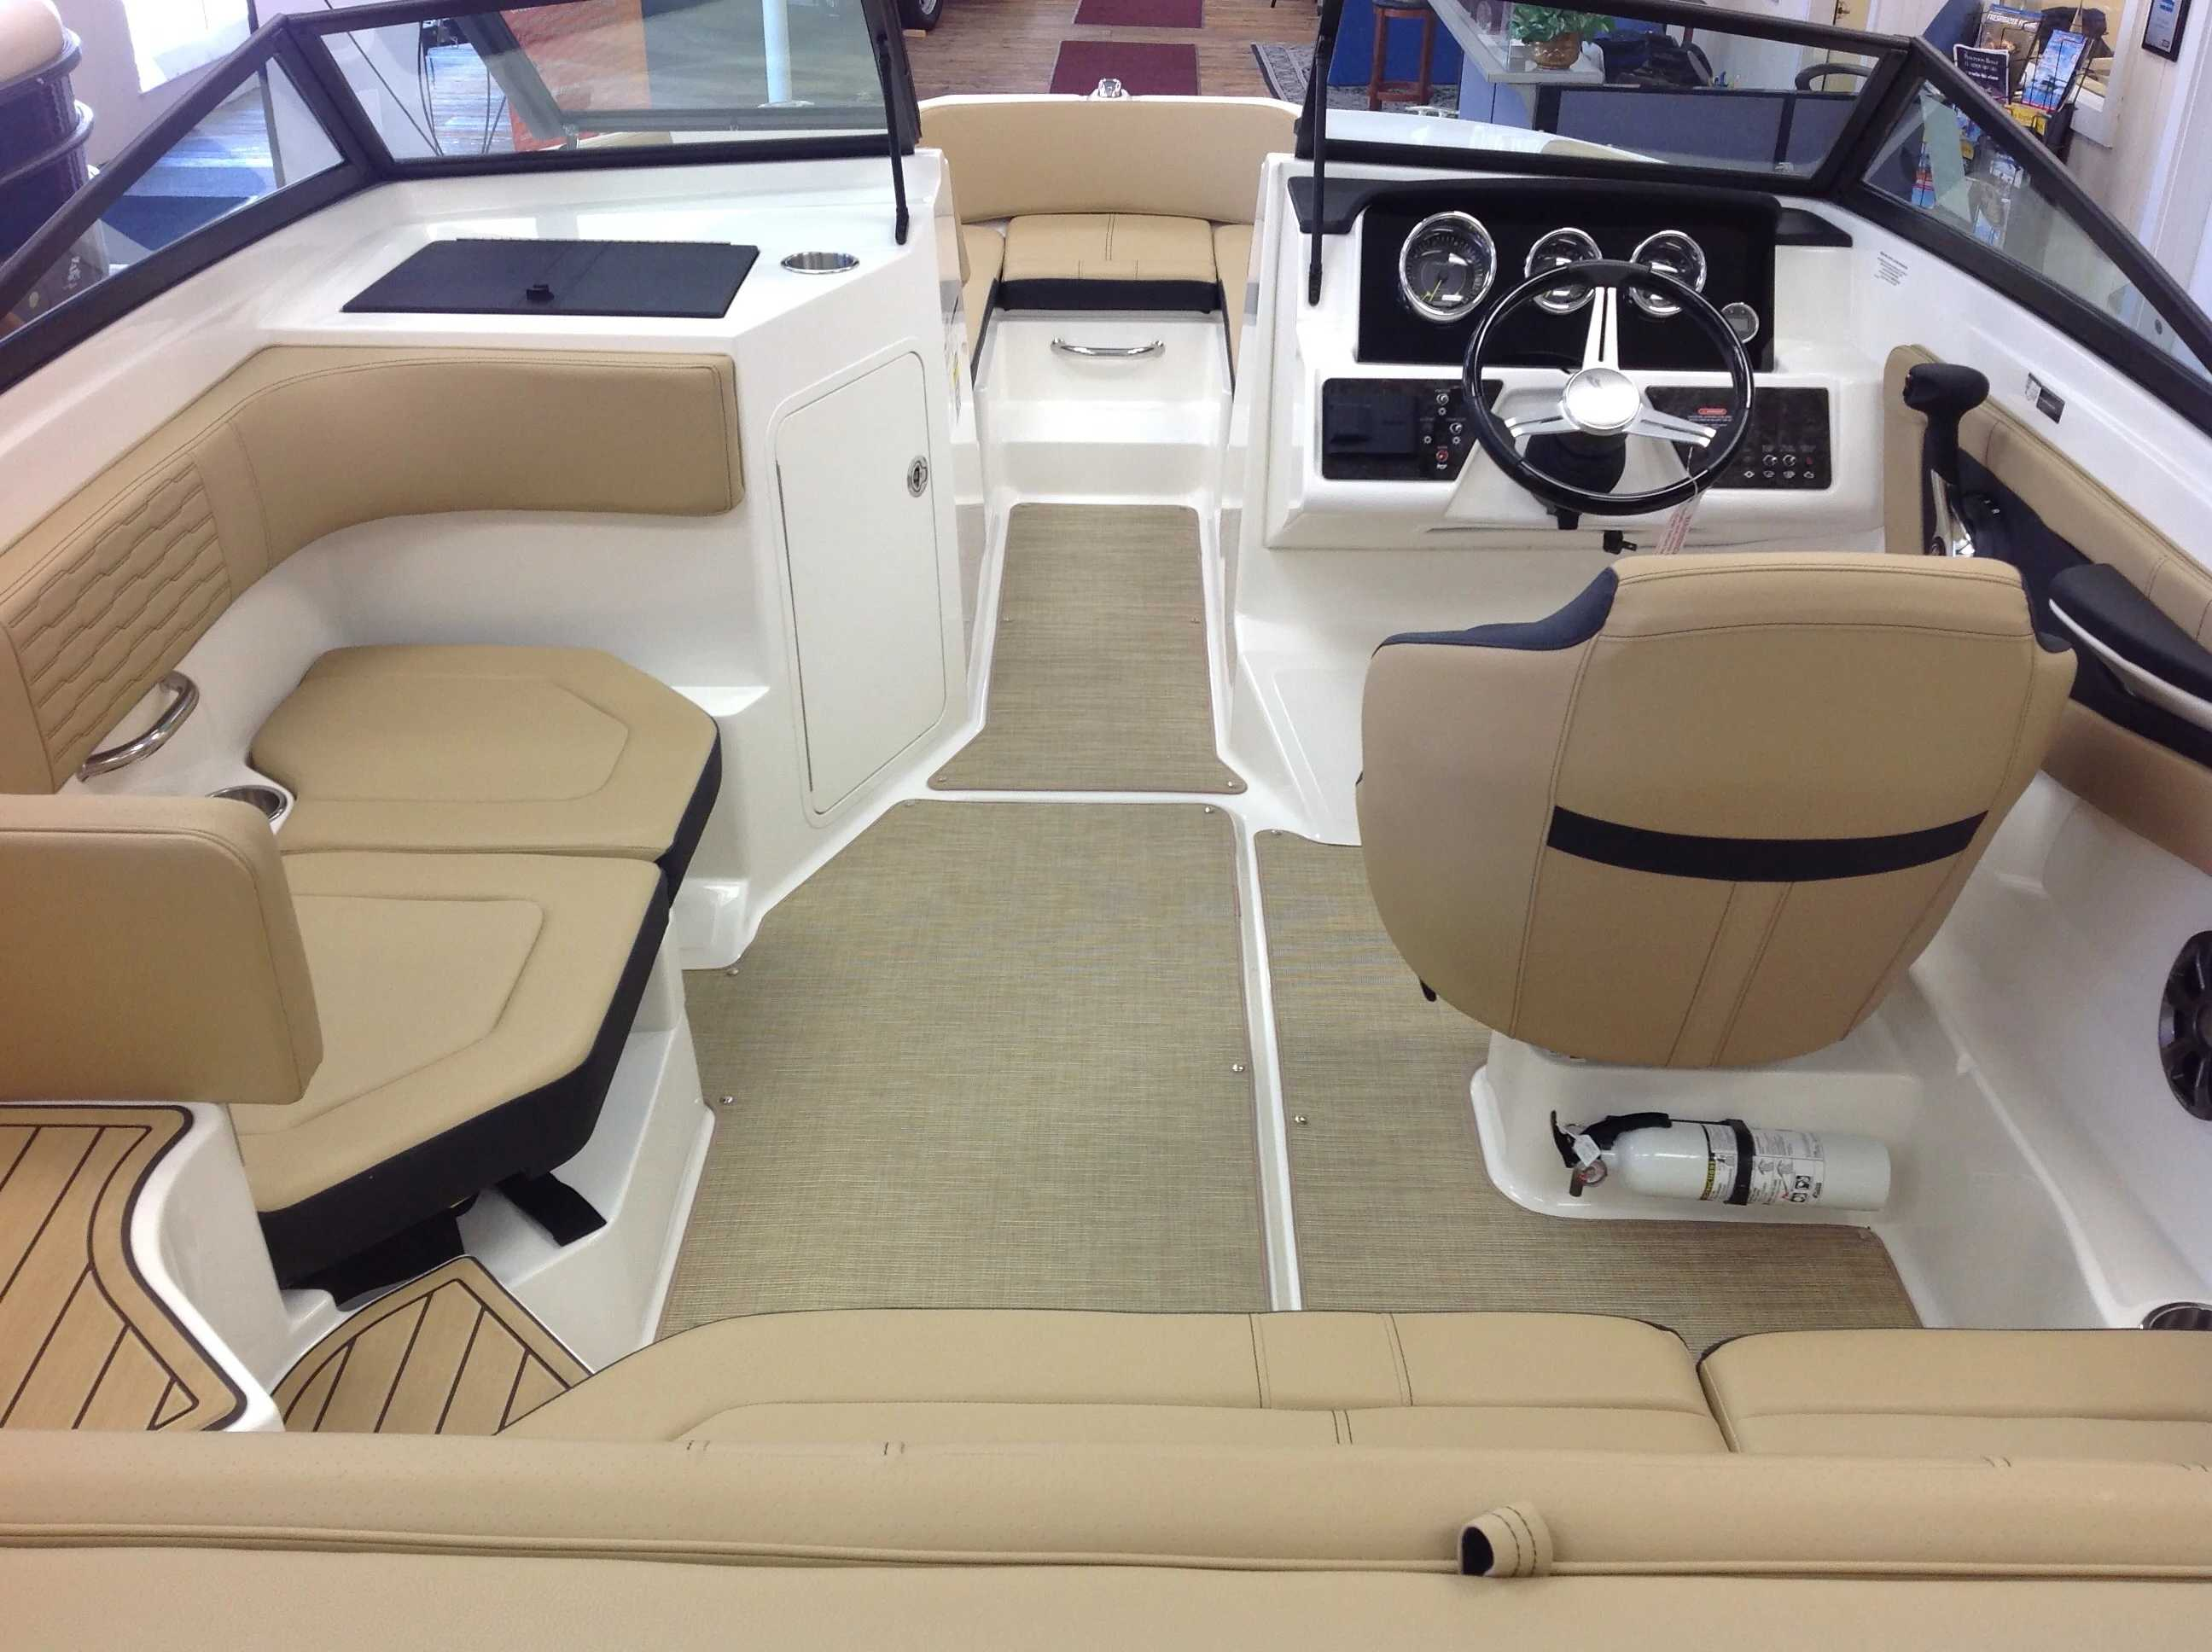 2021 Sea Ray boat for sale, model of the boat is 190 SPX & Image # 11 of 12